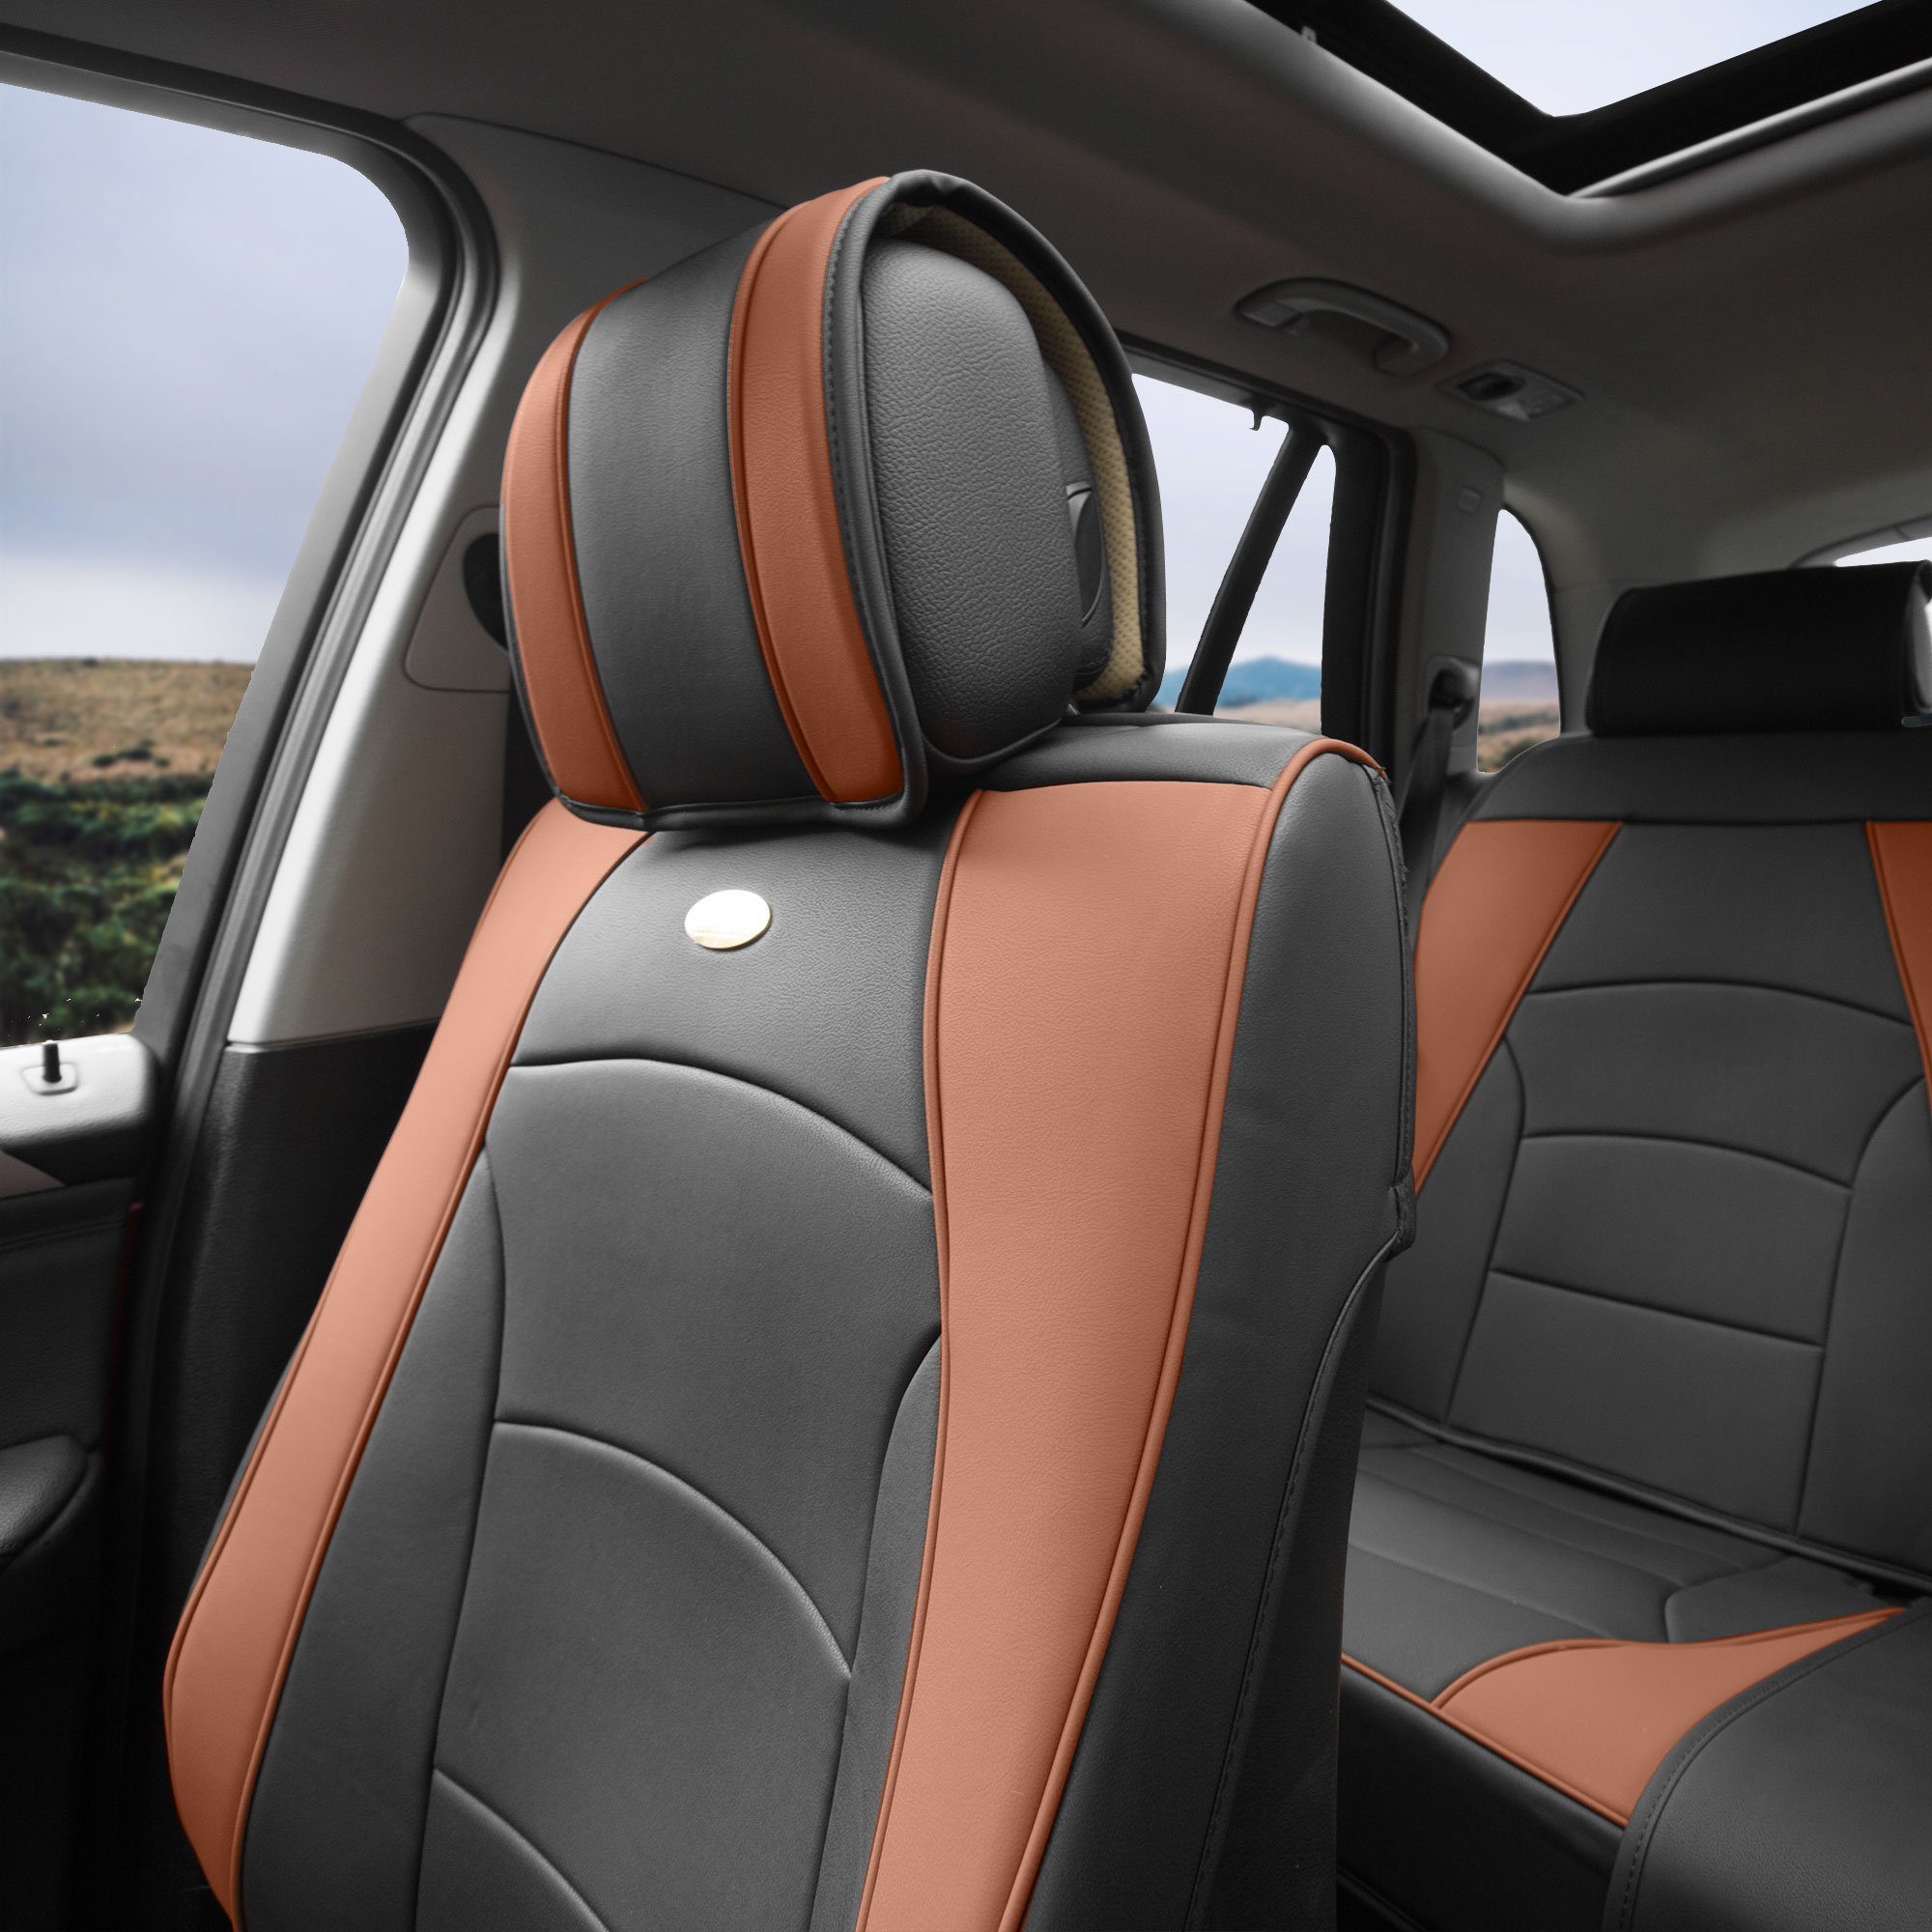 Luxury-Leather-Seat-Cushion-Covers-Front-Bucket-Pair-11-Color-Options thumbnail 25